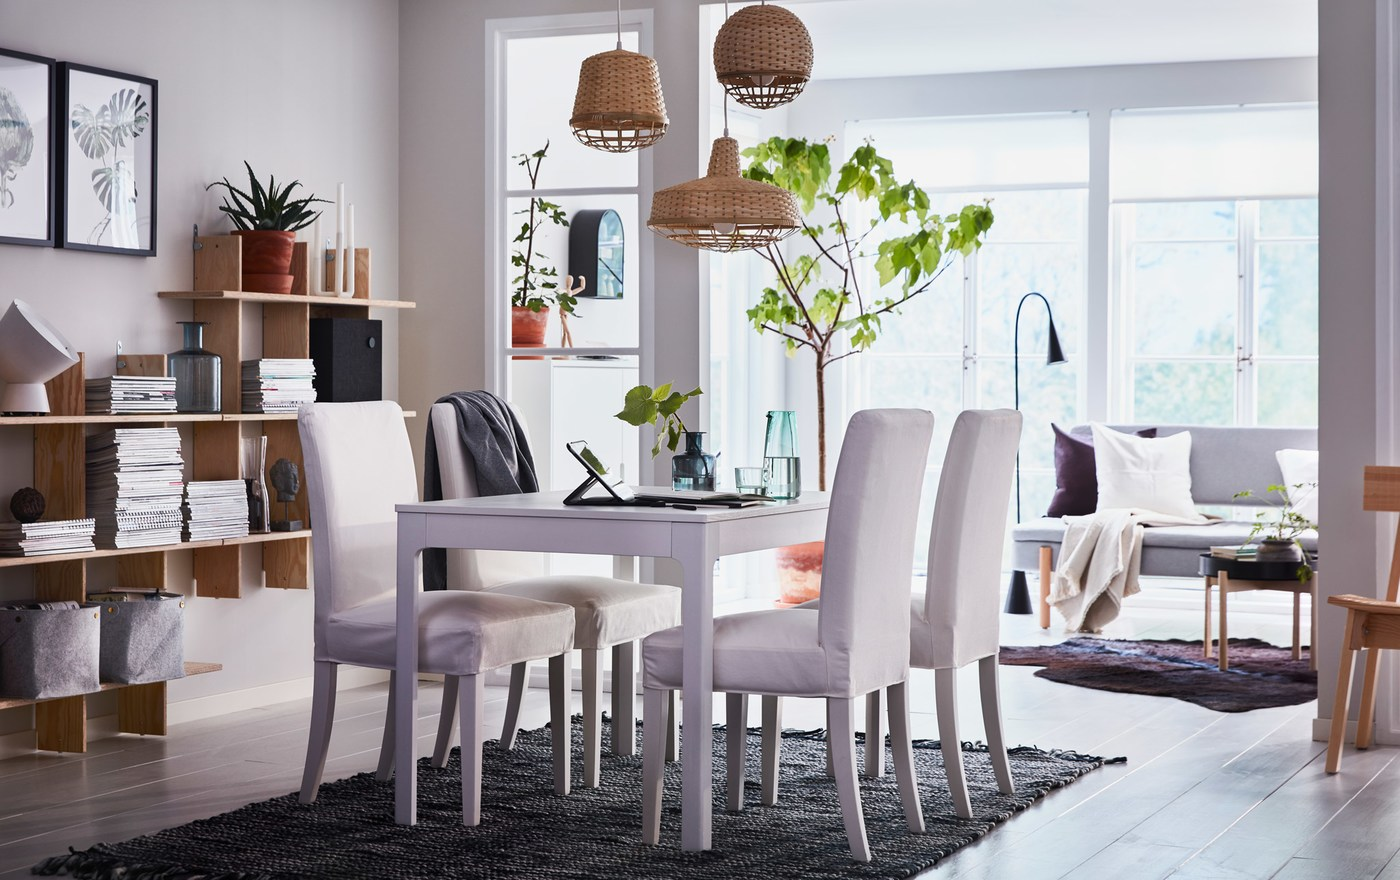 A beige, black and white dining area in an open-plan living space with white upholstered HENRIKSDAL chairs and EKEDALEN extendable table.